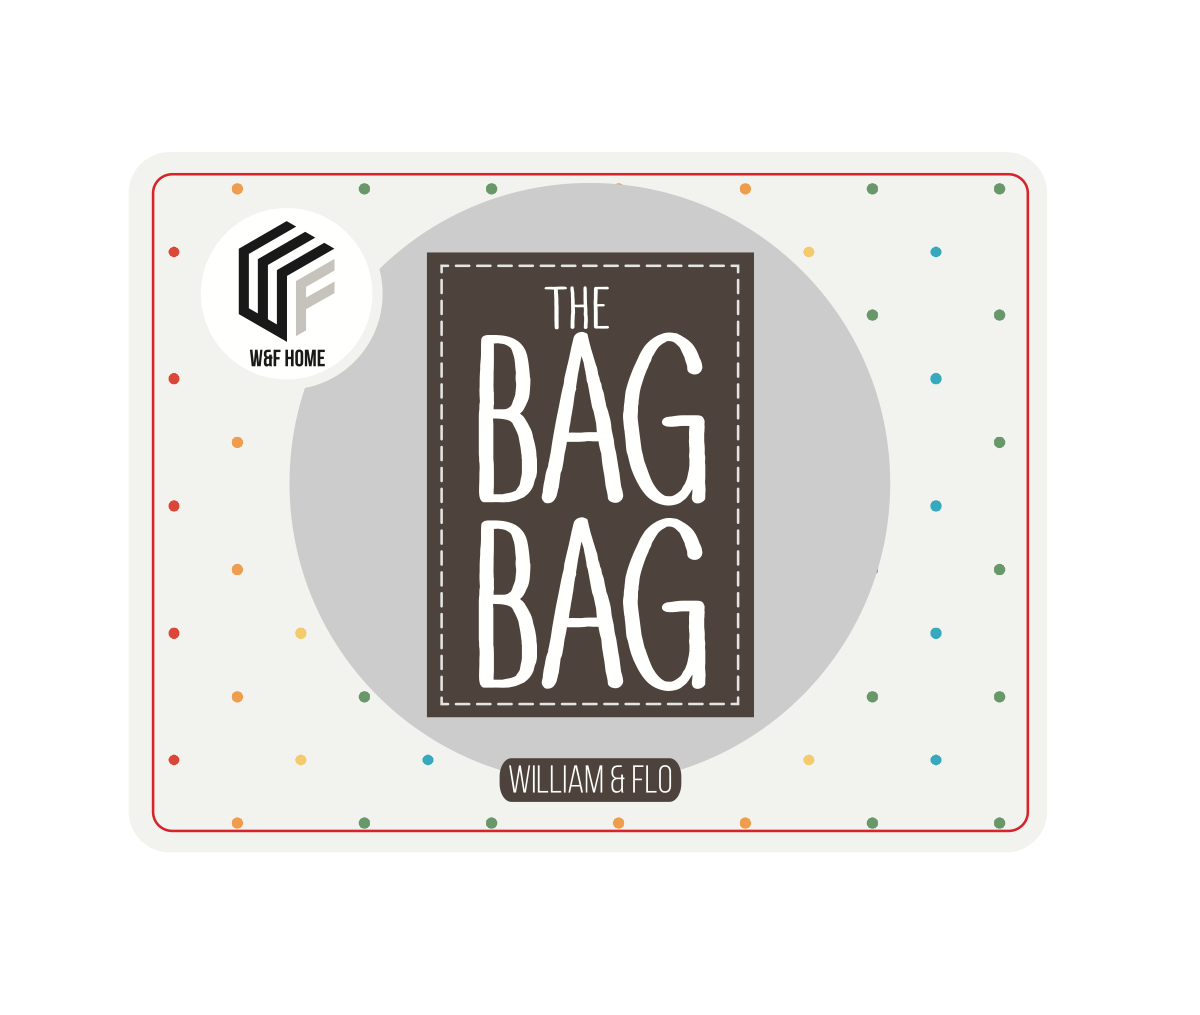 THE BAG BAG project - upgrade my front packaging label/sticker so it looks more professional